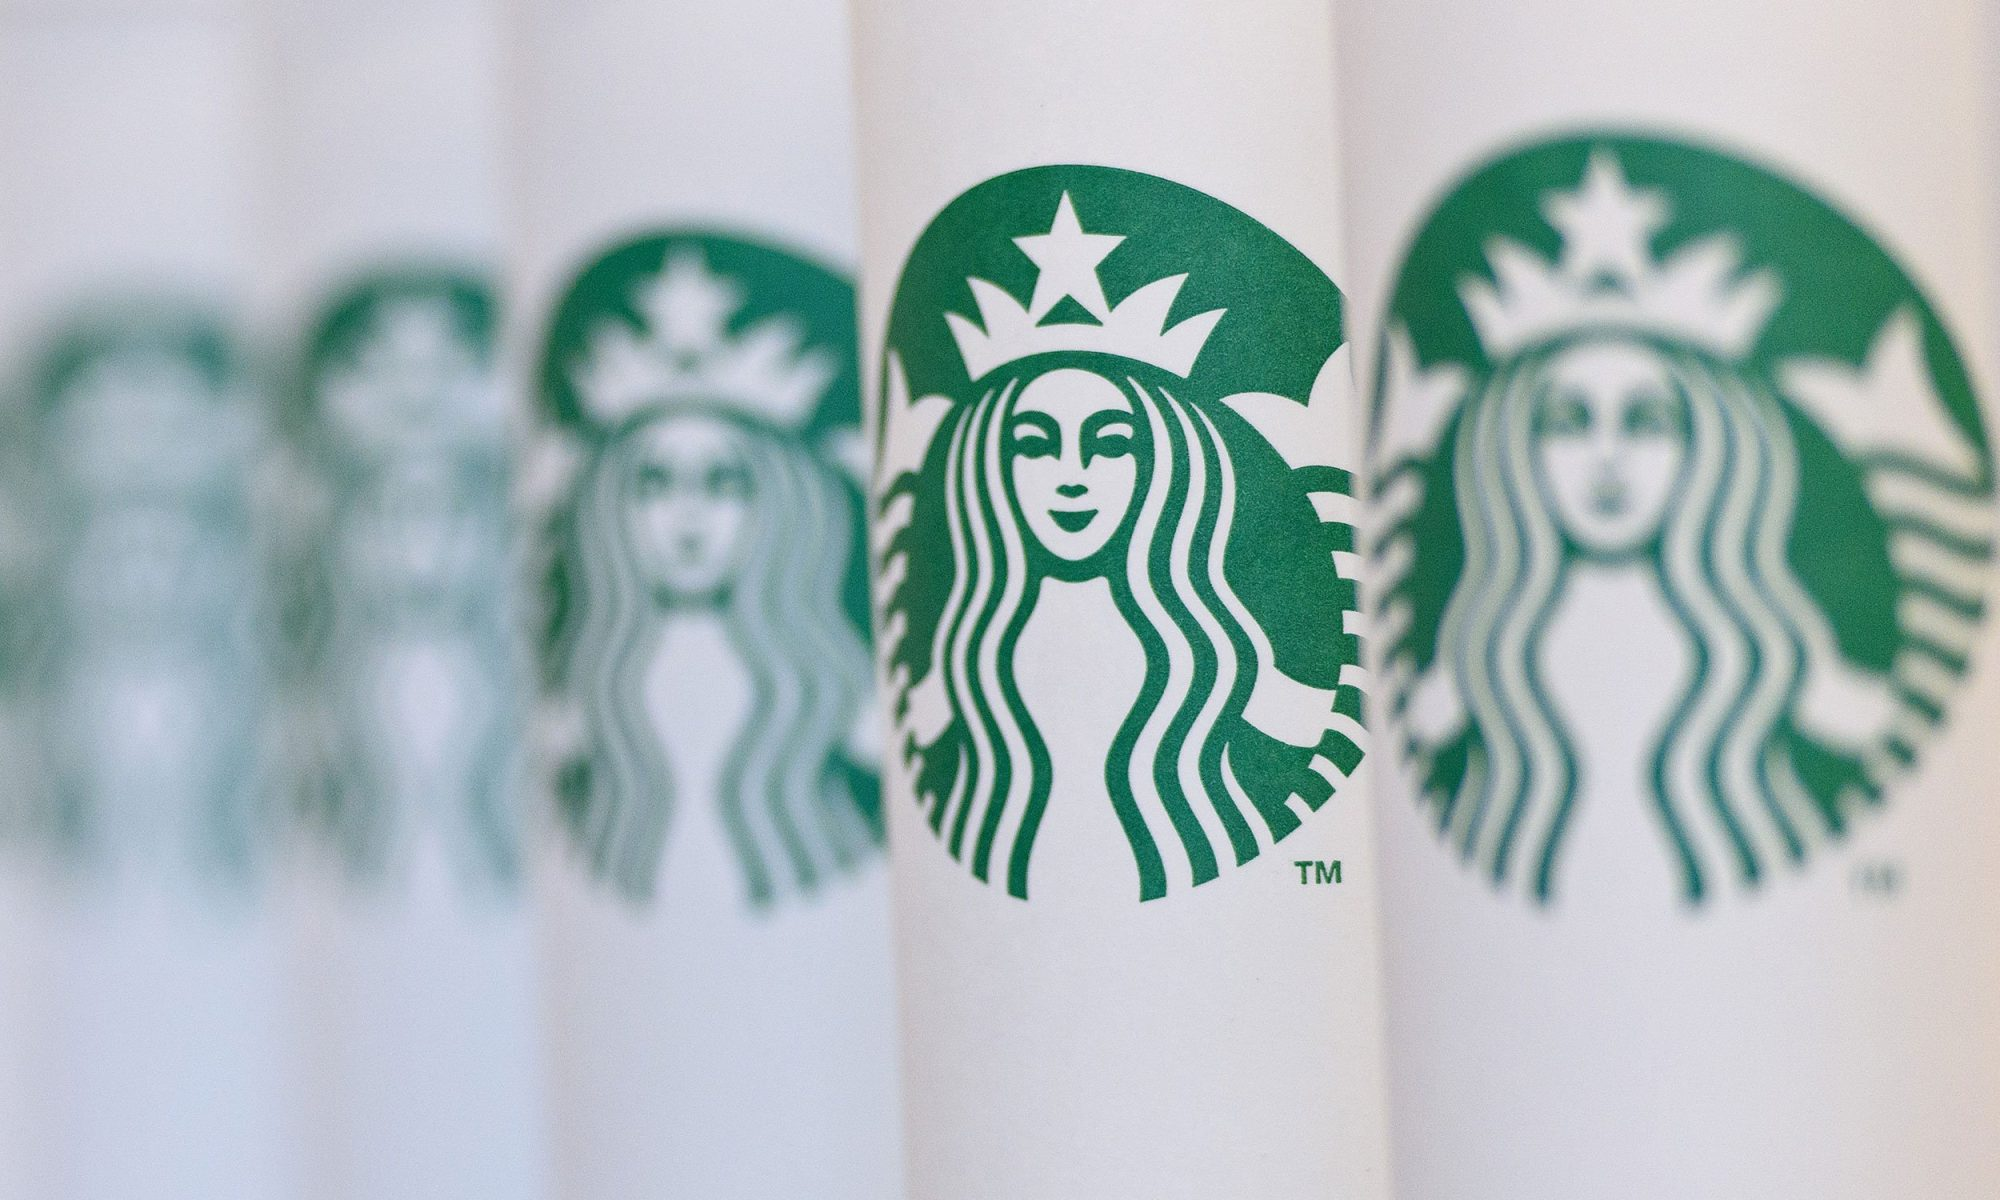 starbucks quiet price increase